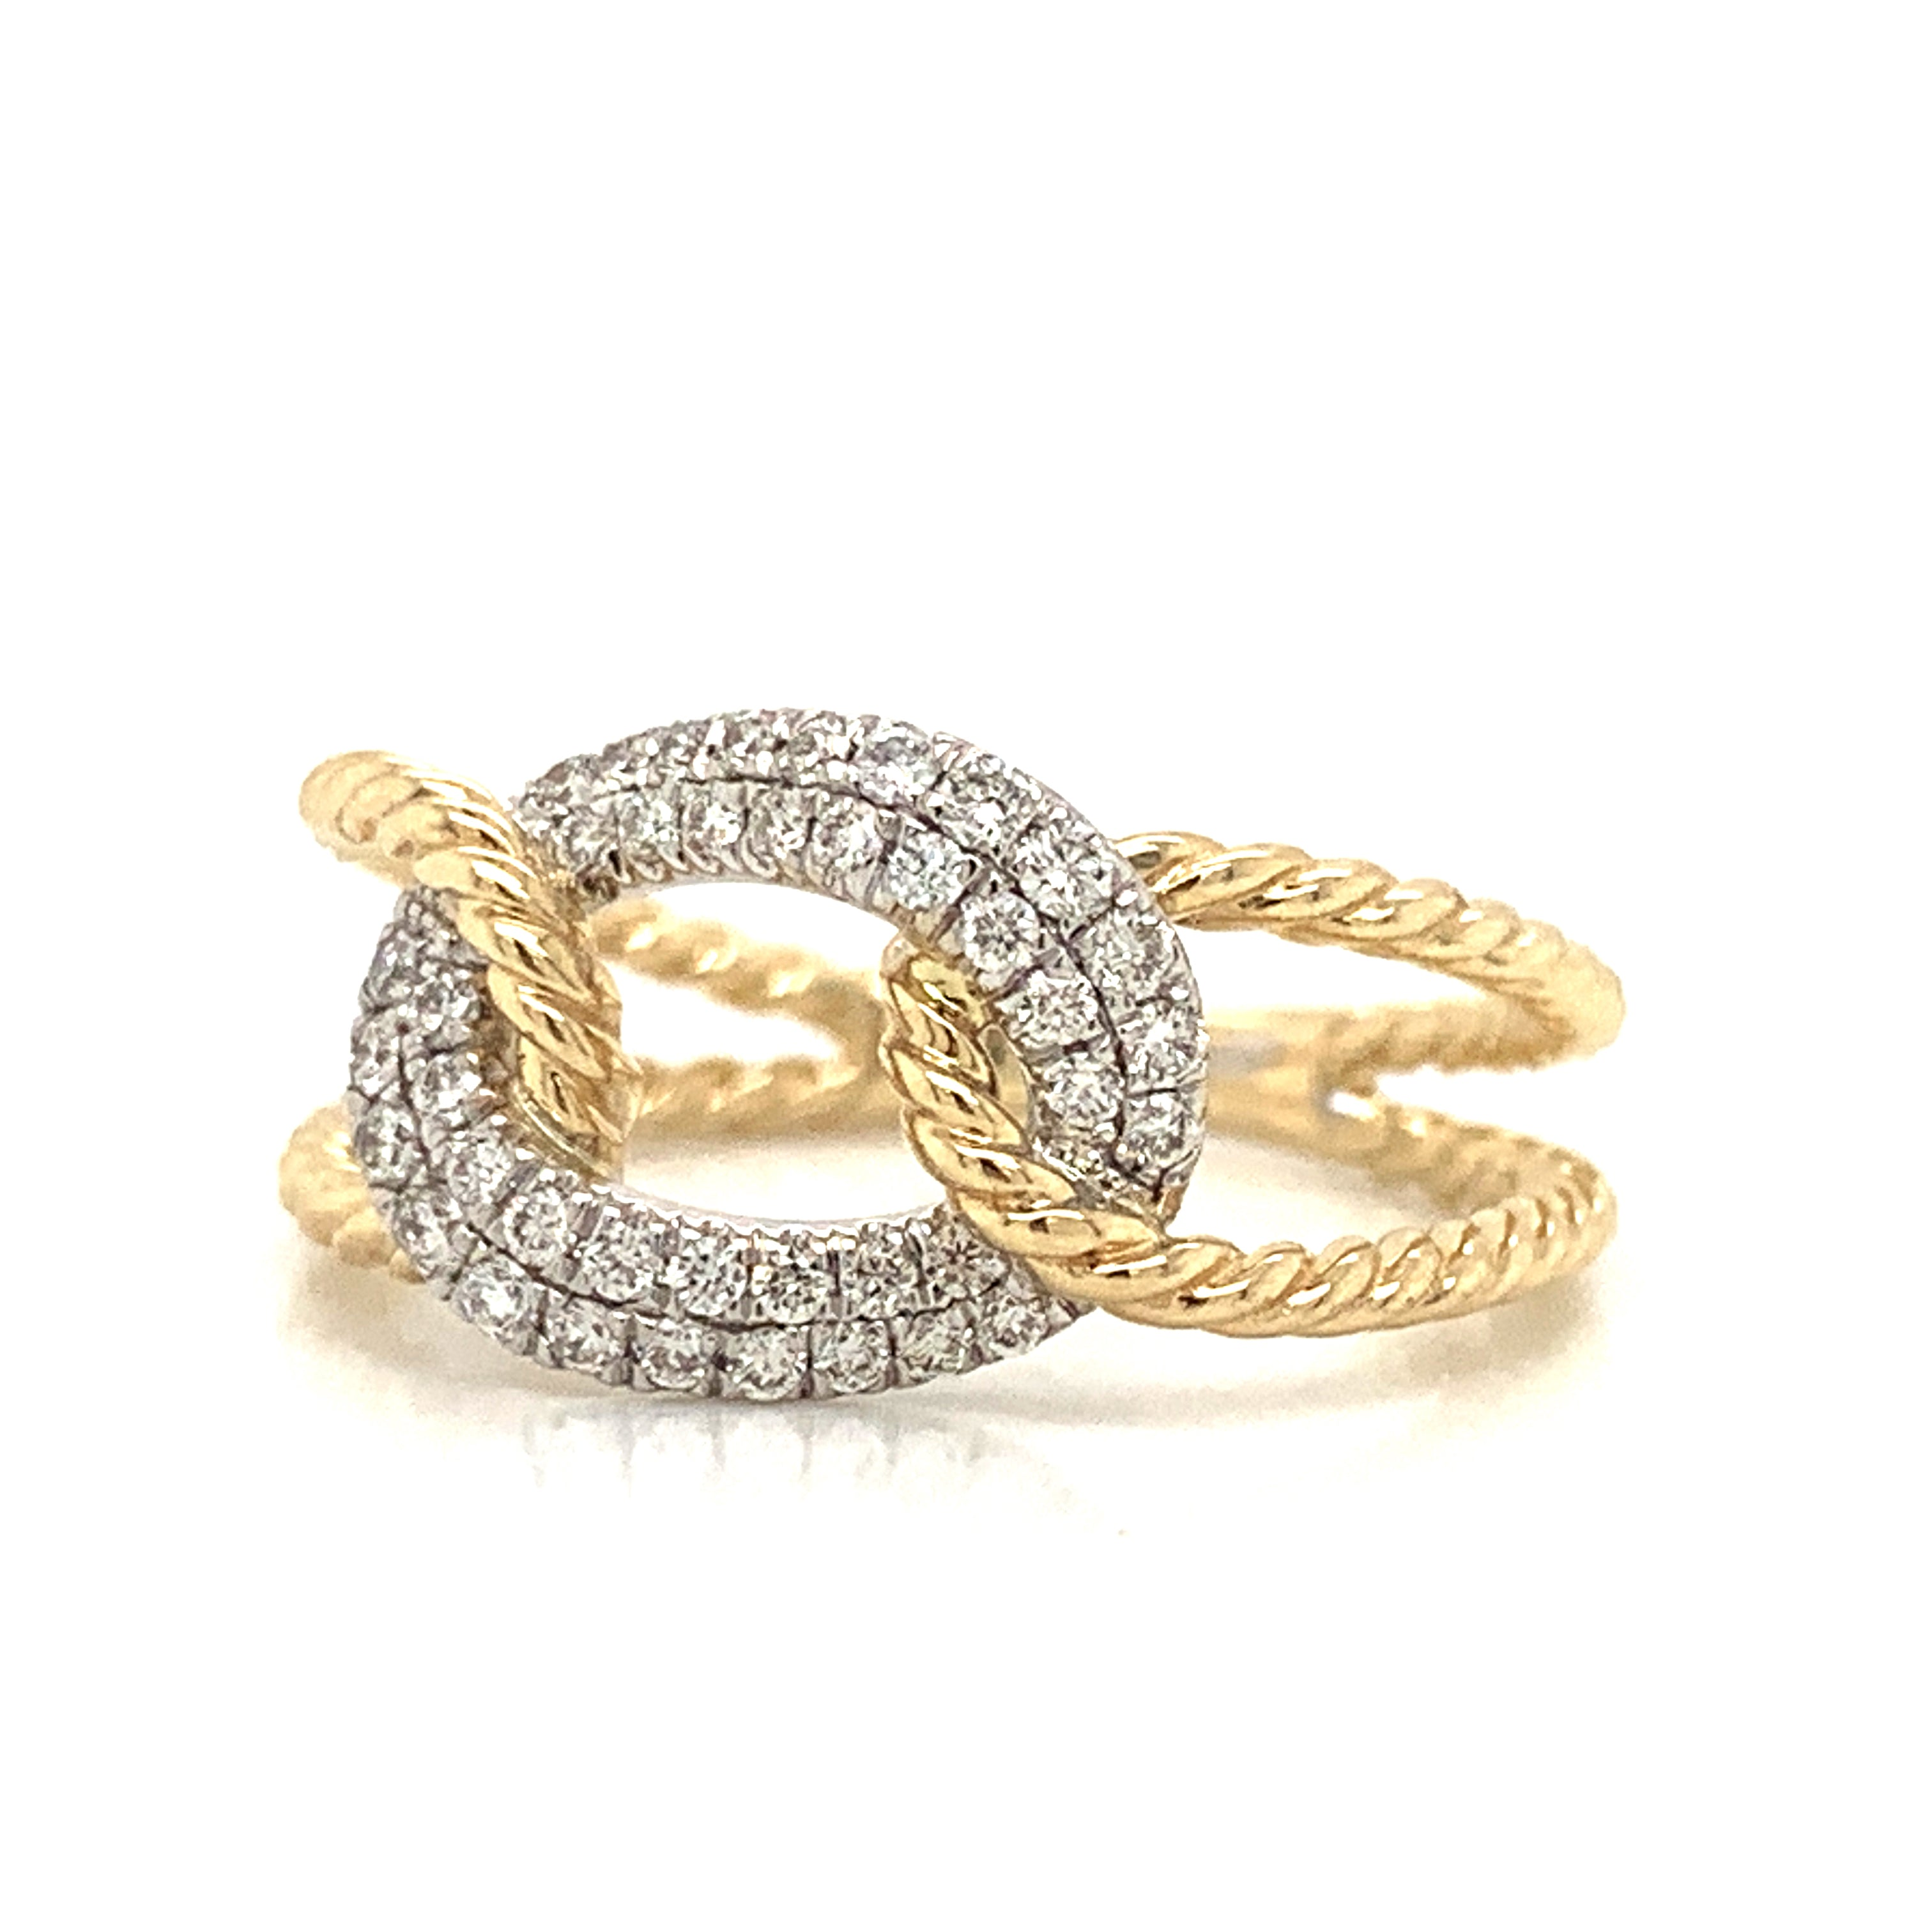 14K Large Two-Tone Open Knot Diamond Rope Band